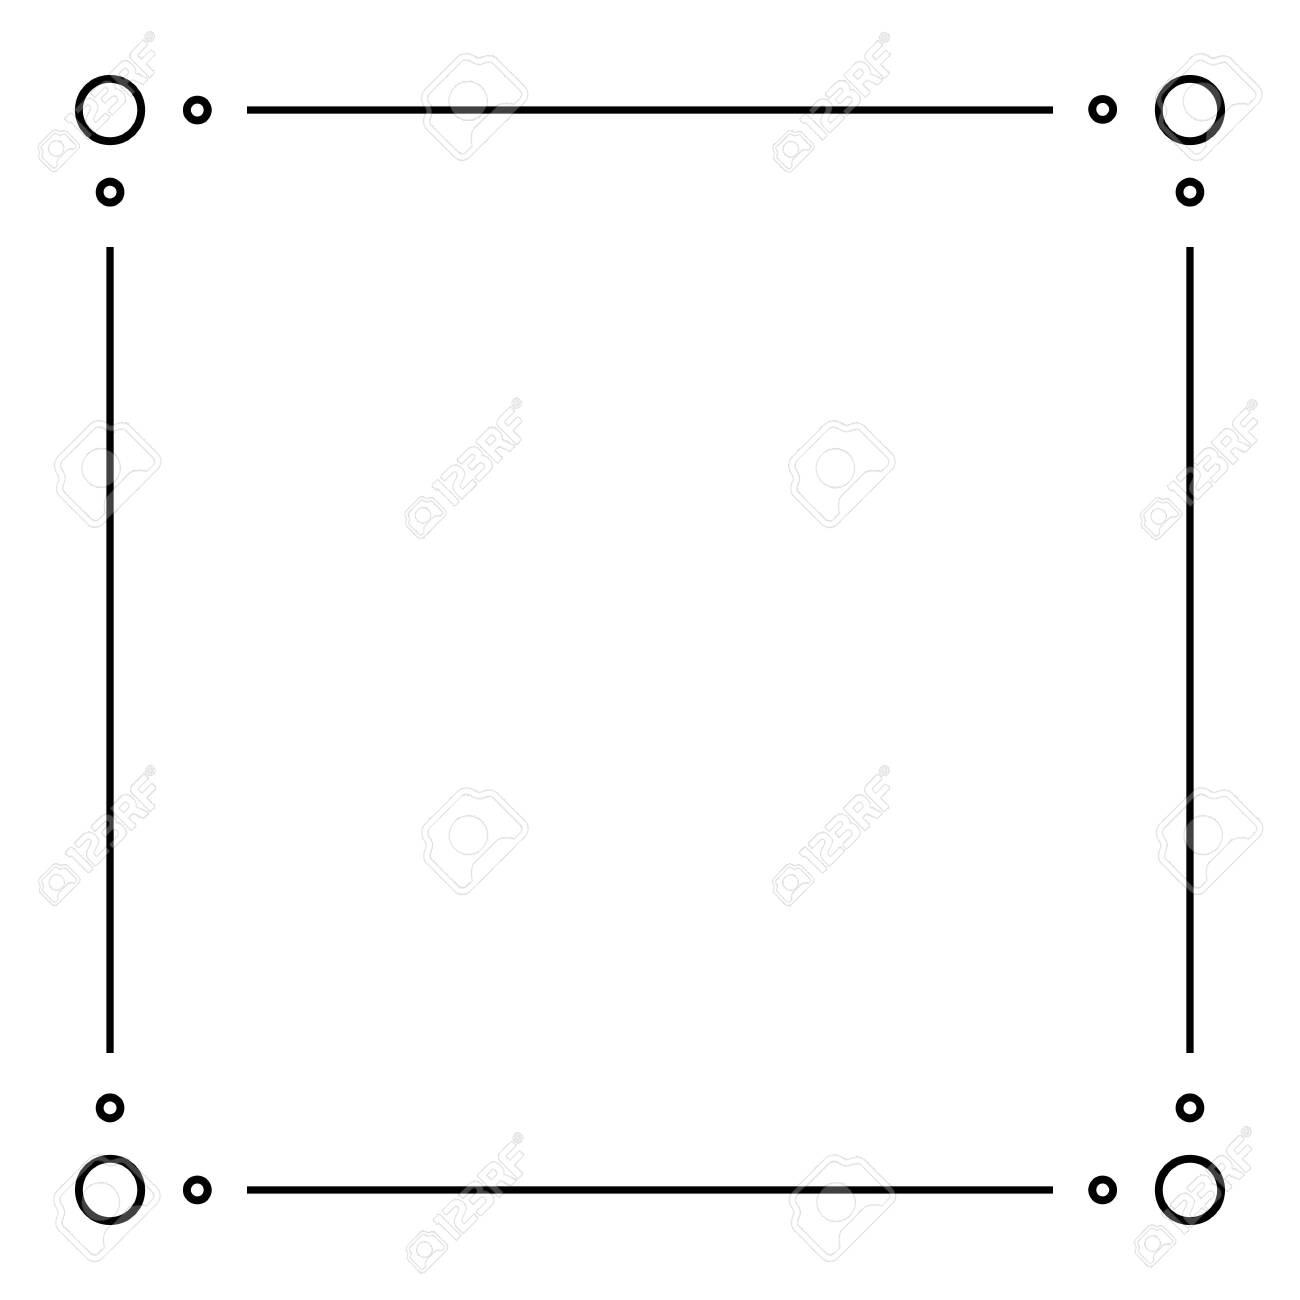 Black Geometric Frame Isolated on White - Geometrical Art Deco Style Template for Invitation Cards, Flyers - Line-Art Vector Design - 153677012